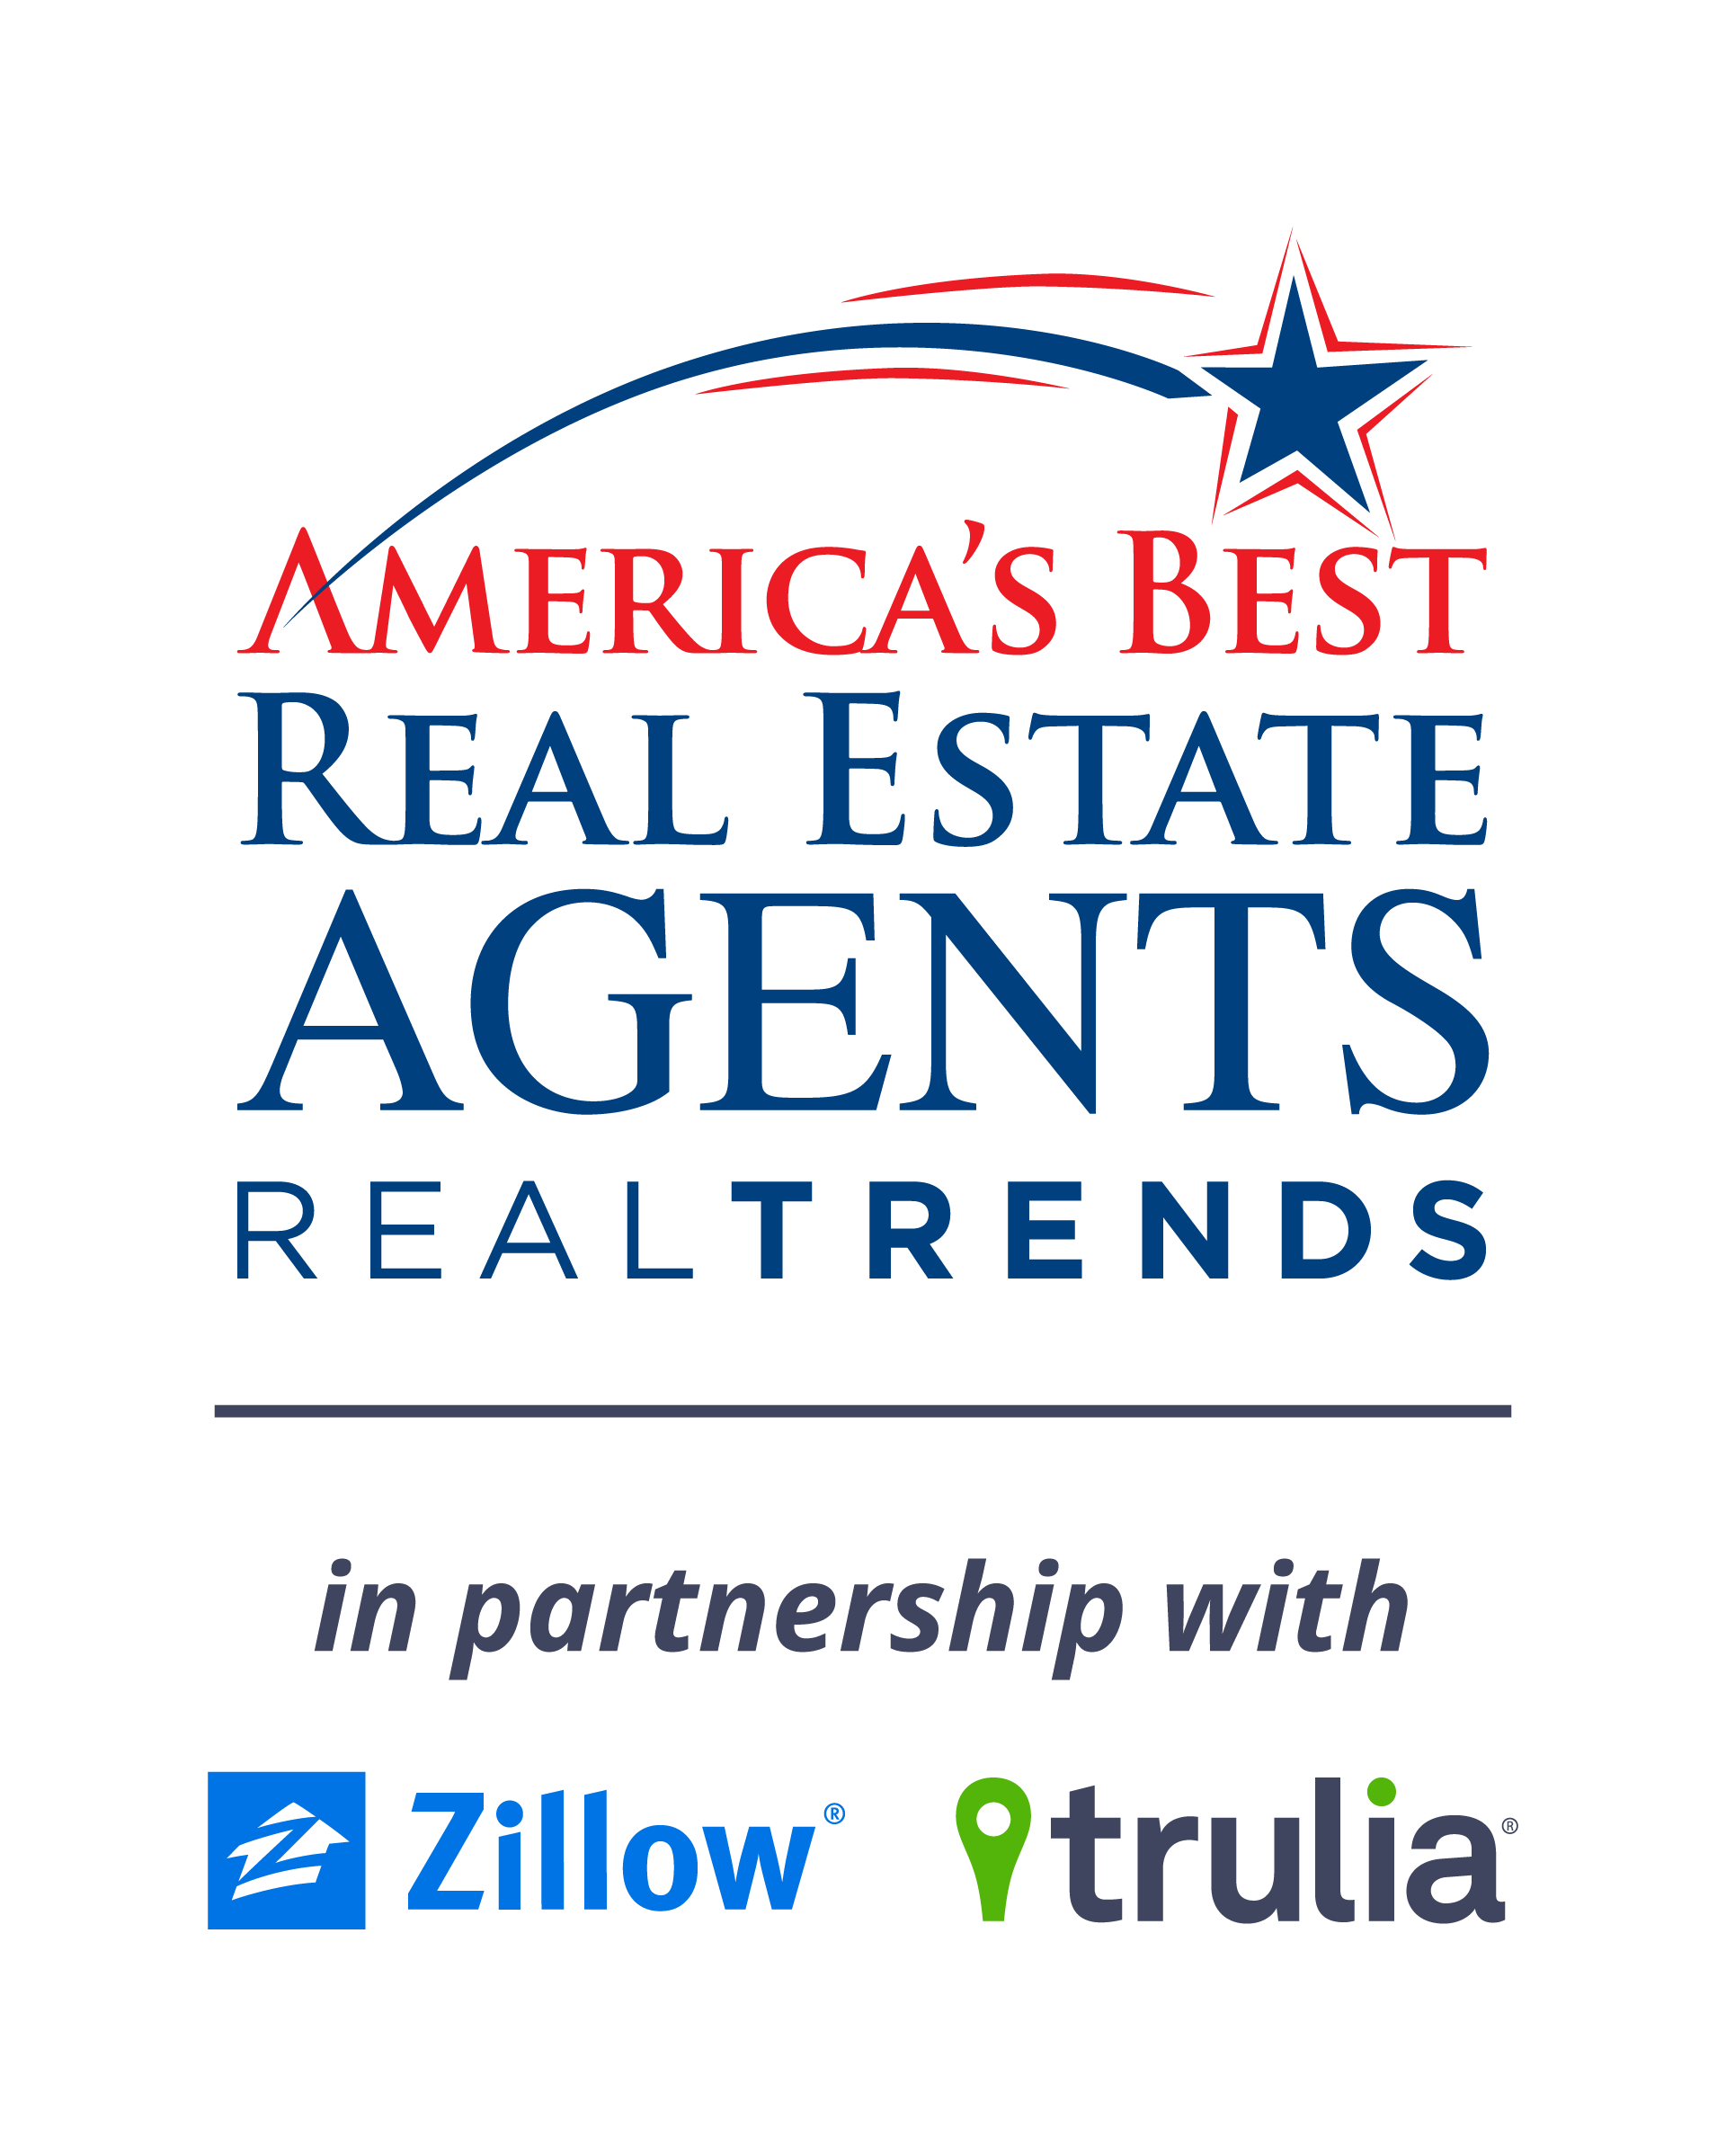 Jammie Trapp Top in Wisconsin! REAL Trends America's Best Real Estate Agents